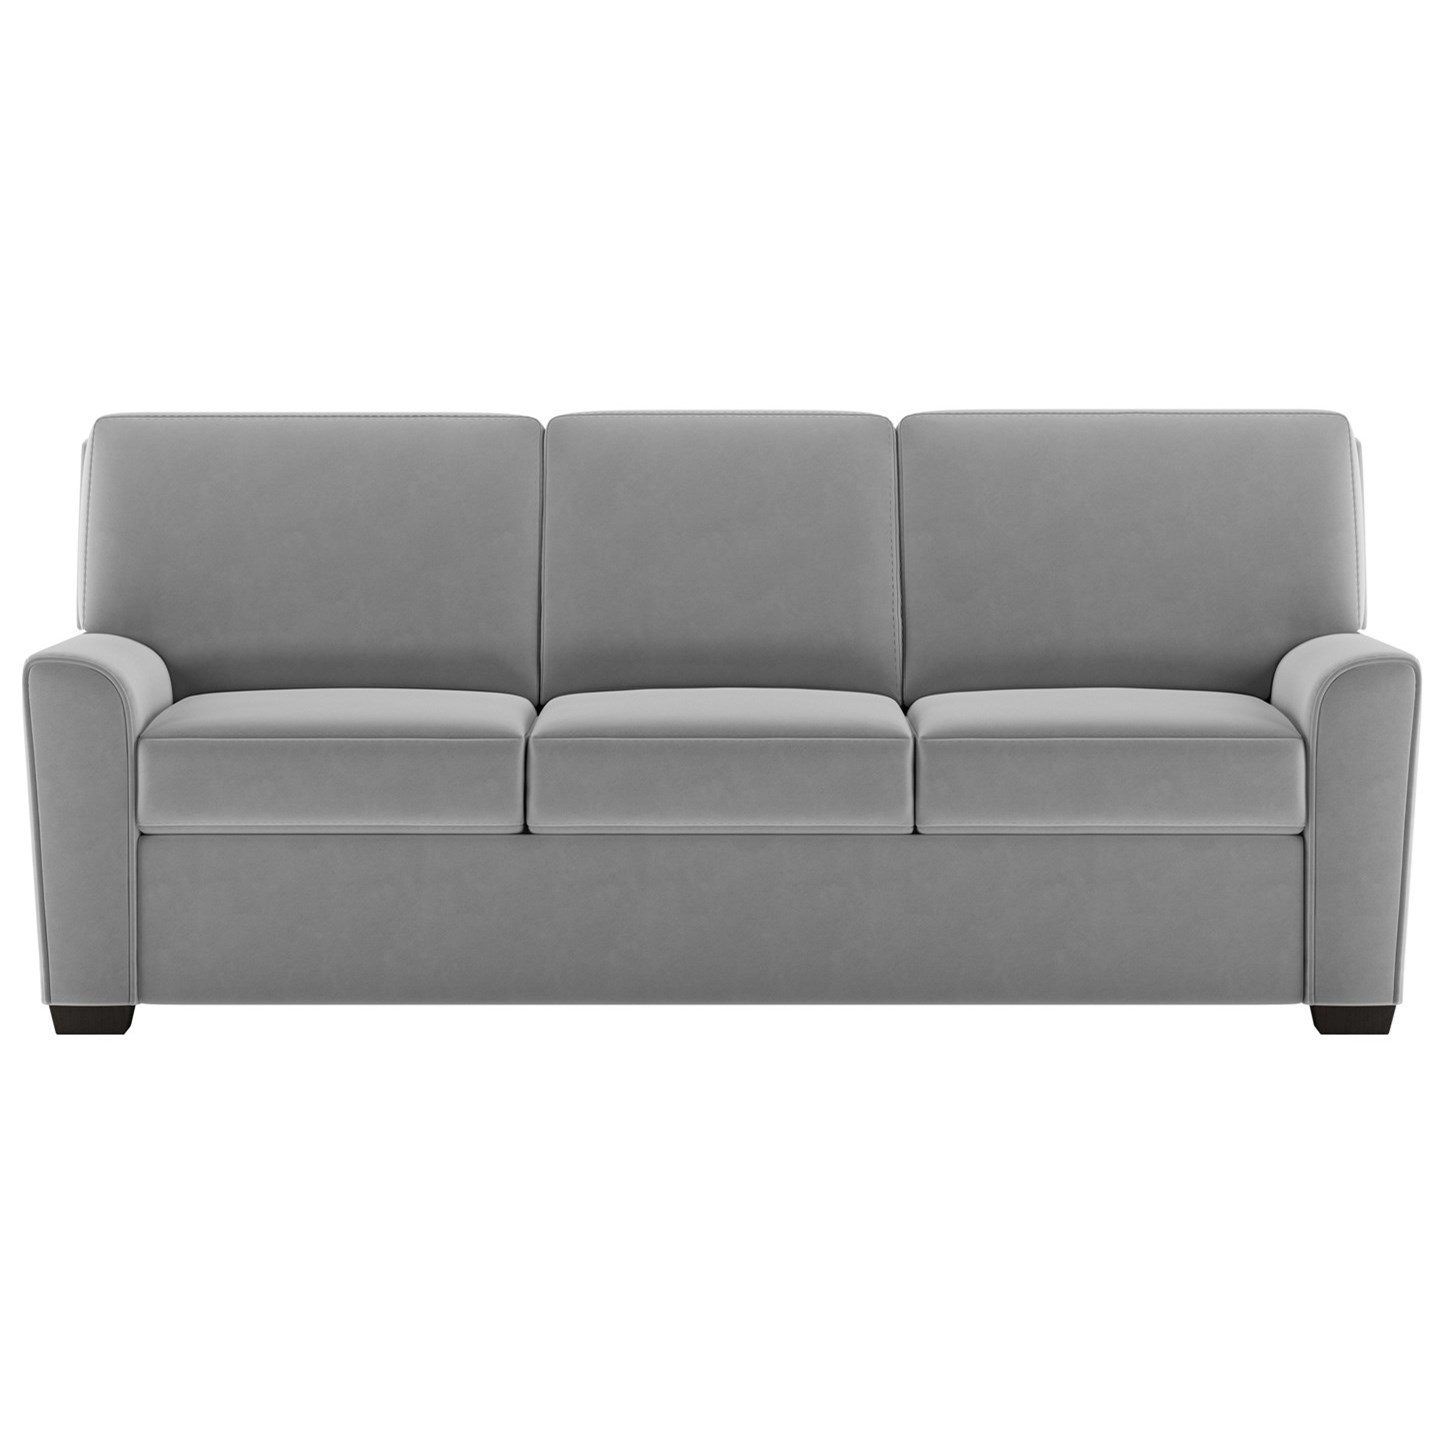 Klein King Sleeper Sofa by American Leather at Sprintz Furniture